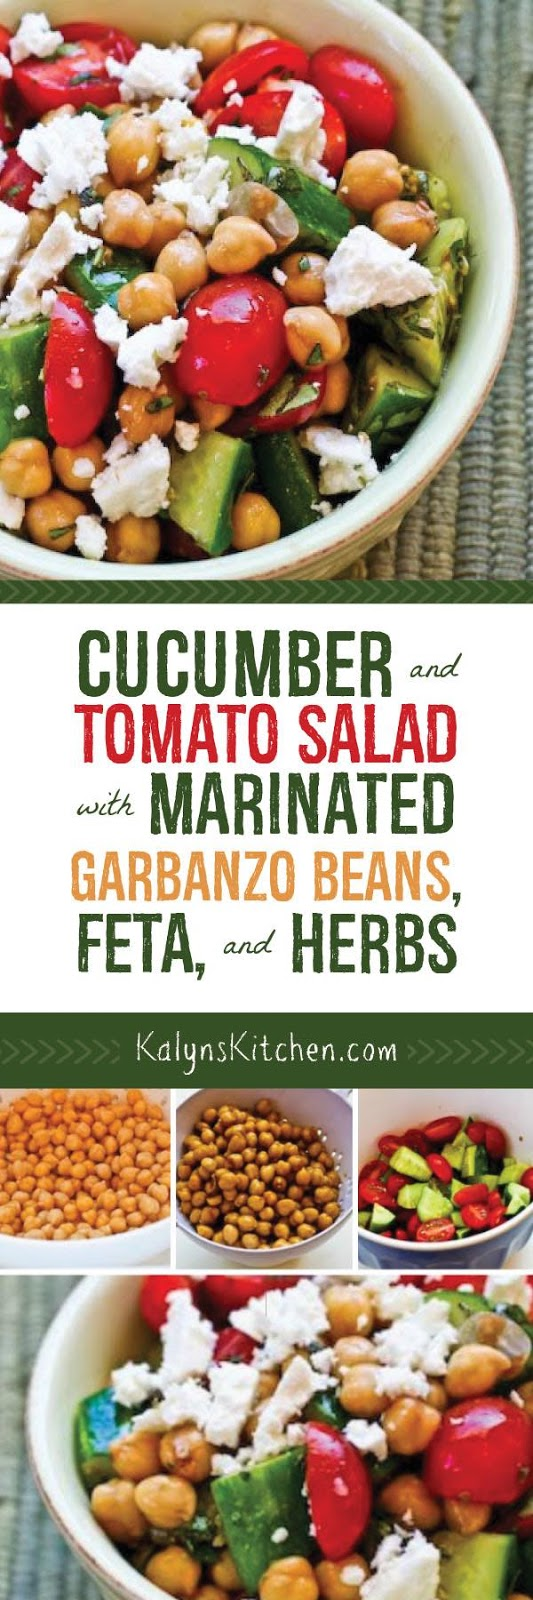 Cucumber and Tomato Salad with Marinated Garbanzo Beans, Feta, and ...